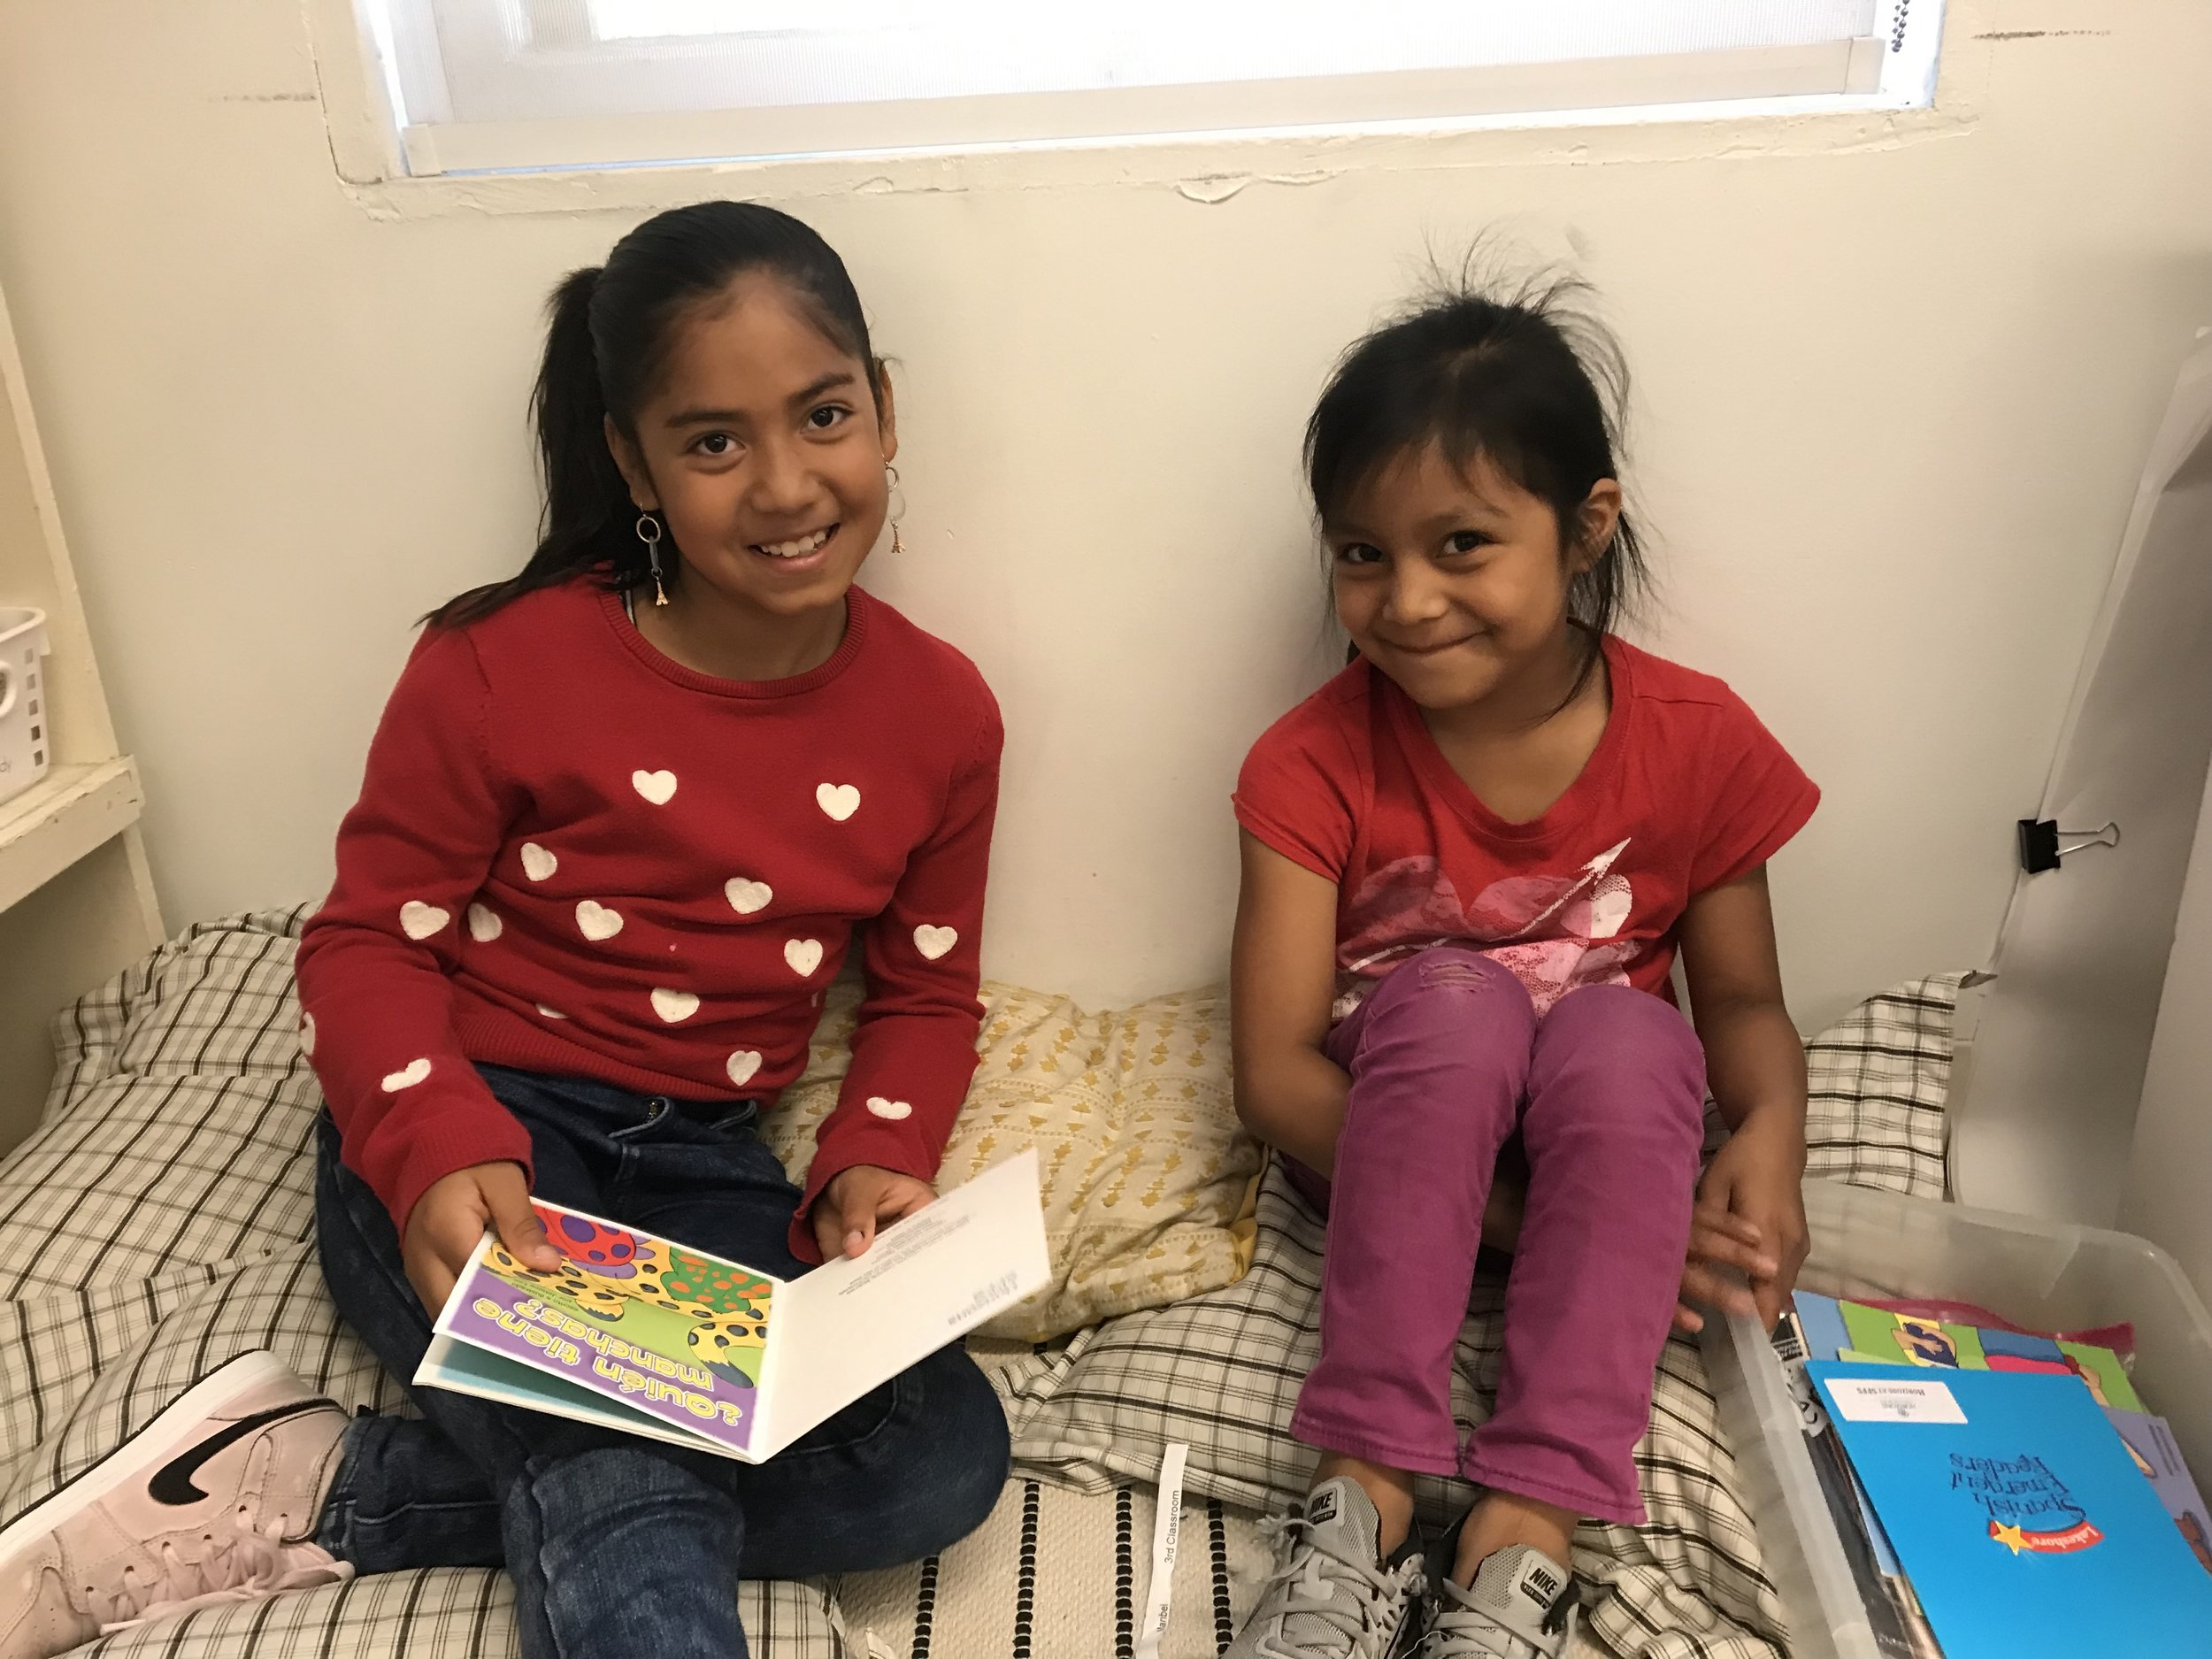 Horizons Books - Every year we put together a list of books that exemplify our summer program theme. Our 2019 theme is Sharing Stories, Building Bridges. These books are used in Horizons classrooms and given to Horizons families to encourage a love of reading. Donate a new book by purchasing one on our 2019 wishlist.